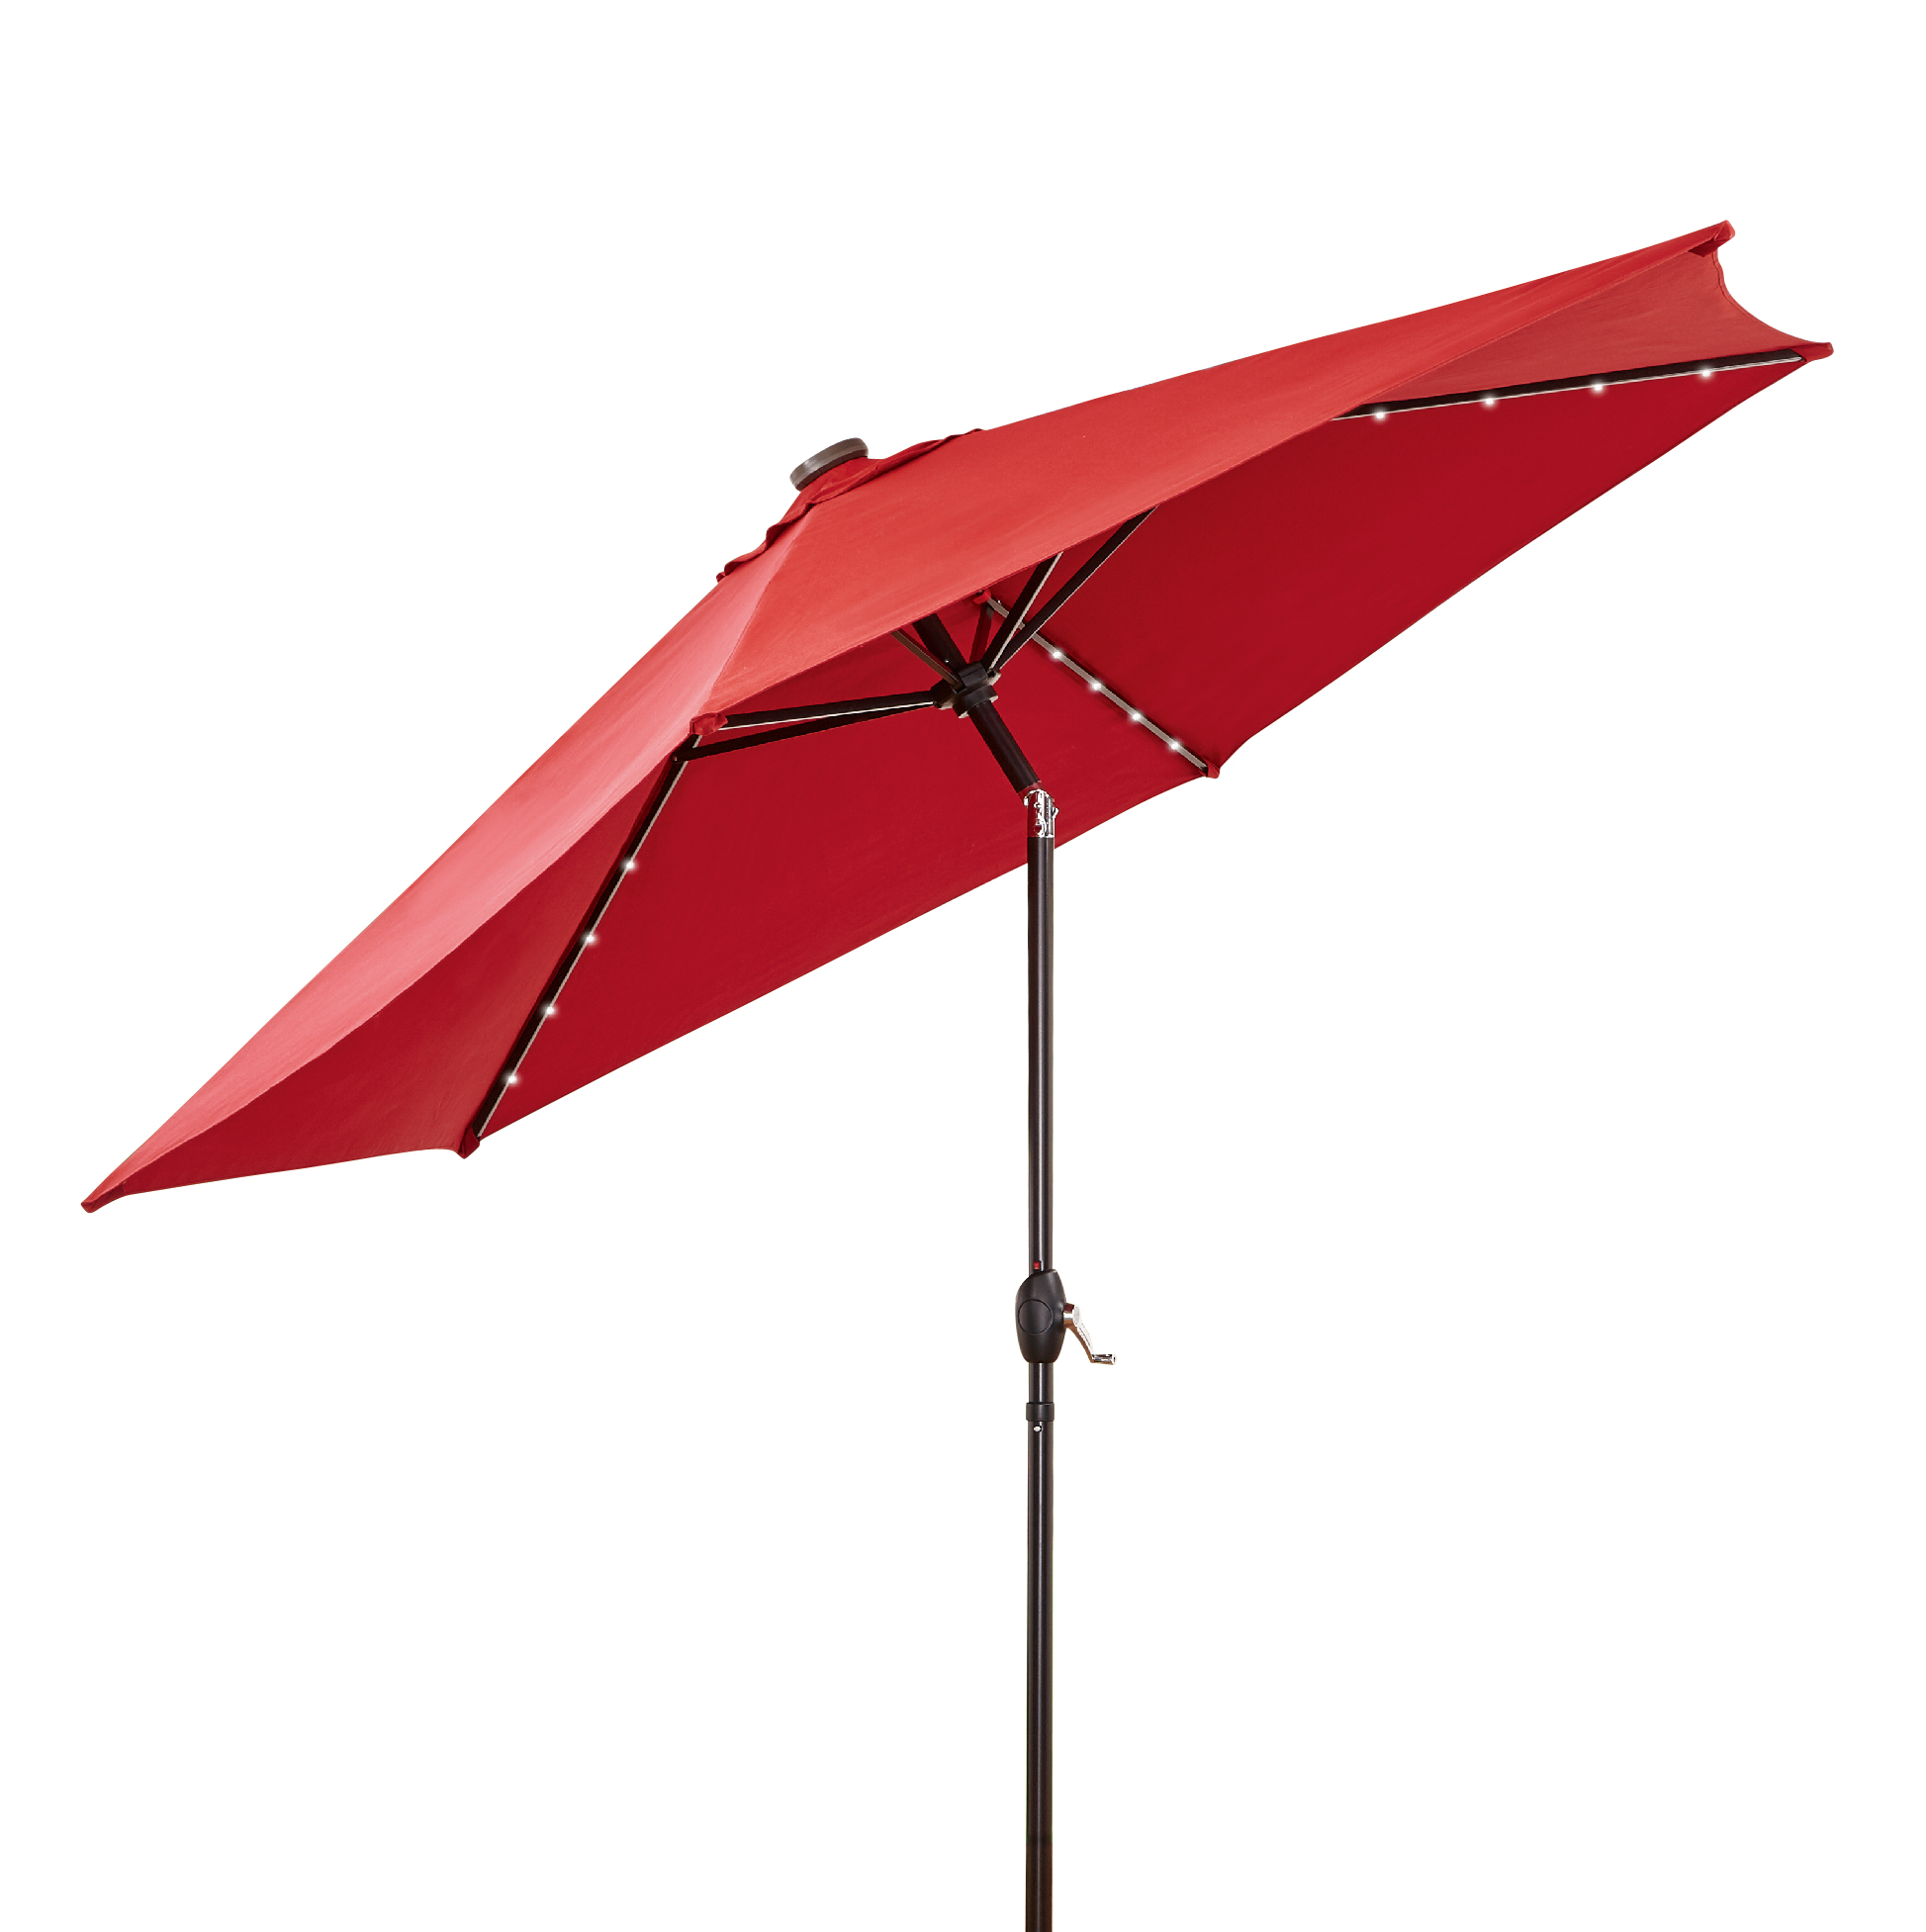 Better Homes and Gardens 10 ft. Solar Umbrella, Red Burgundy by NINGBO EVERLUCK OUTDOOR PRODUCTS MANUFACTING CO LTD